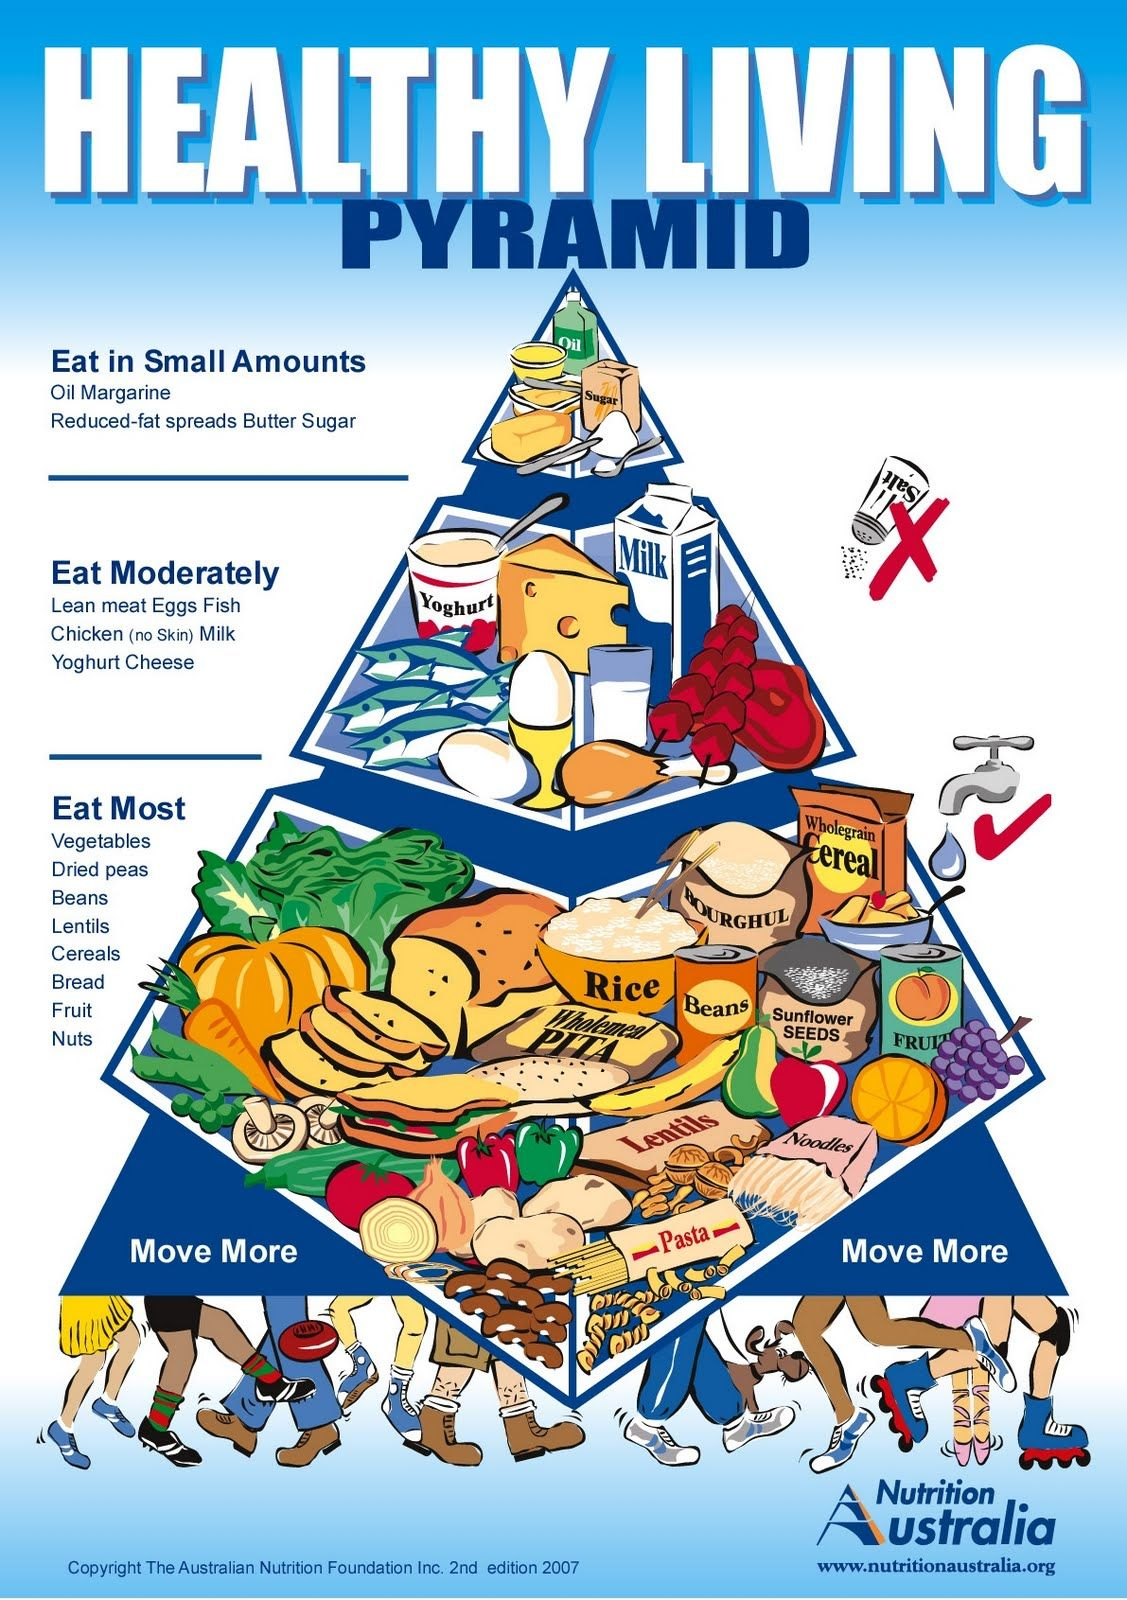 Navigating The Food Pyramid For A Healthier Me